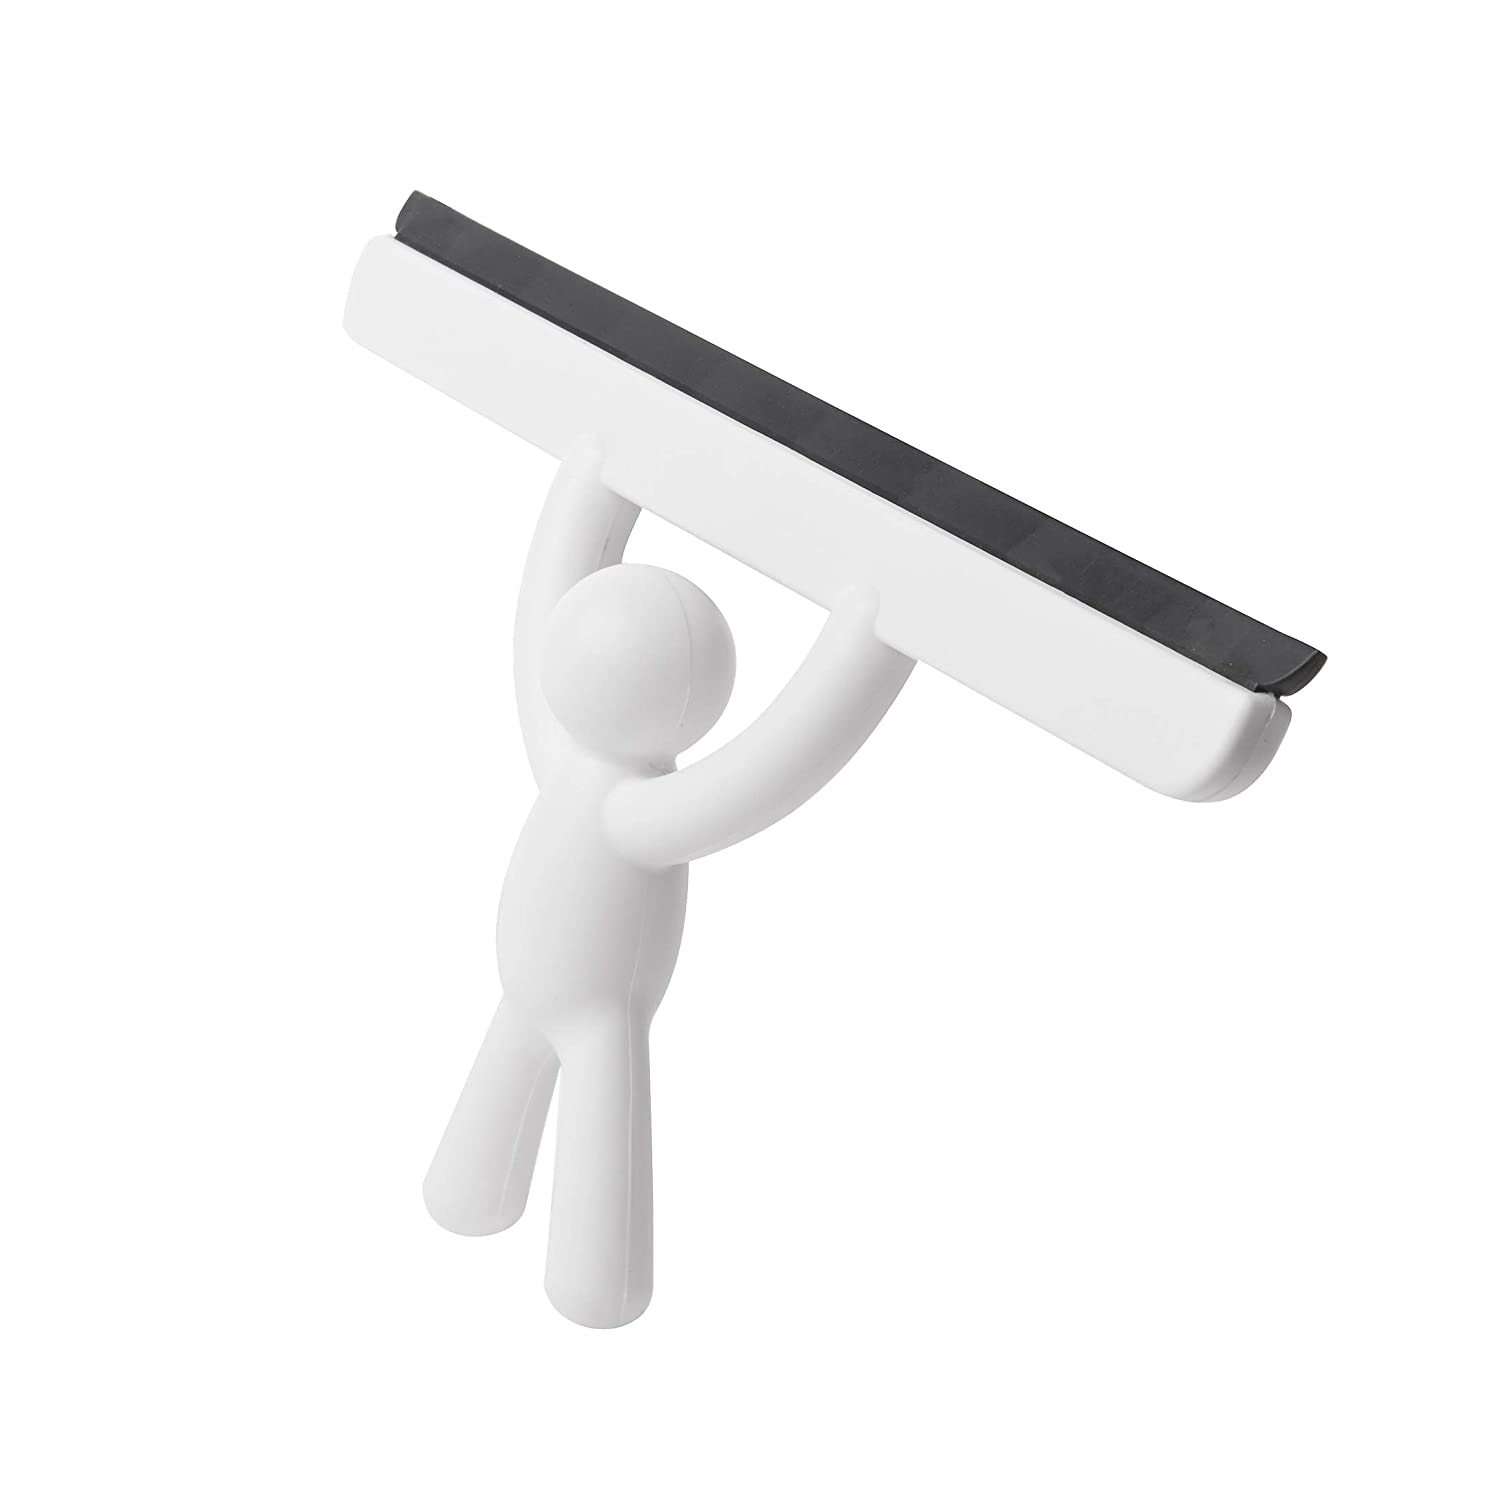 Amazon.com: Umbra Buddy - Escobilla de ducha: Home & Kitchen